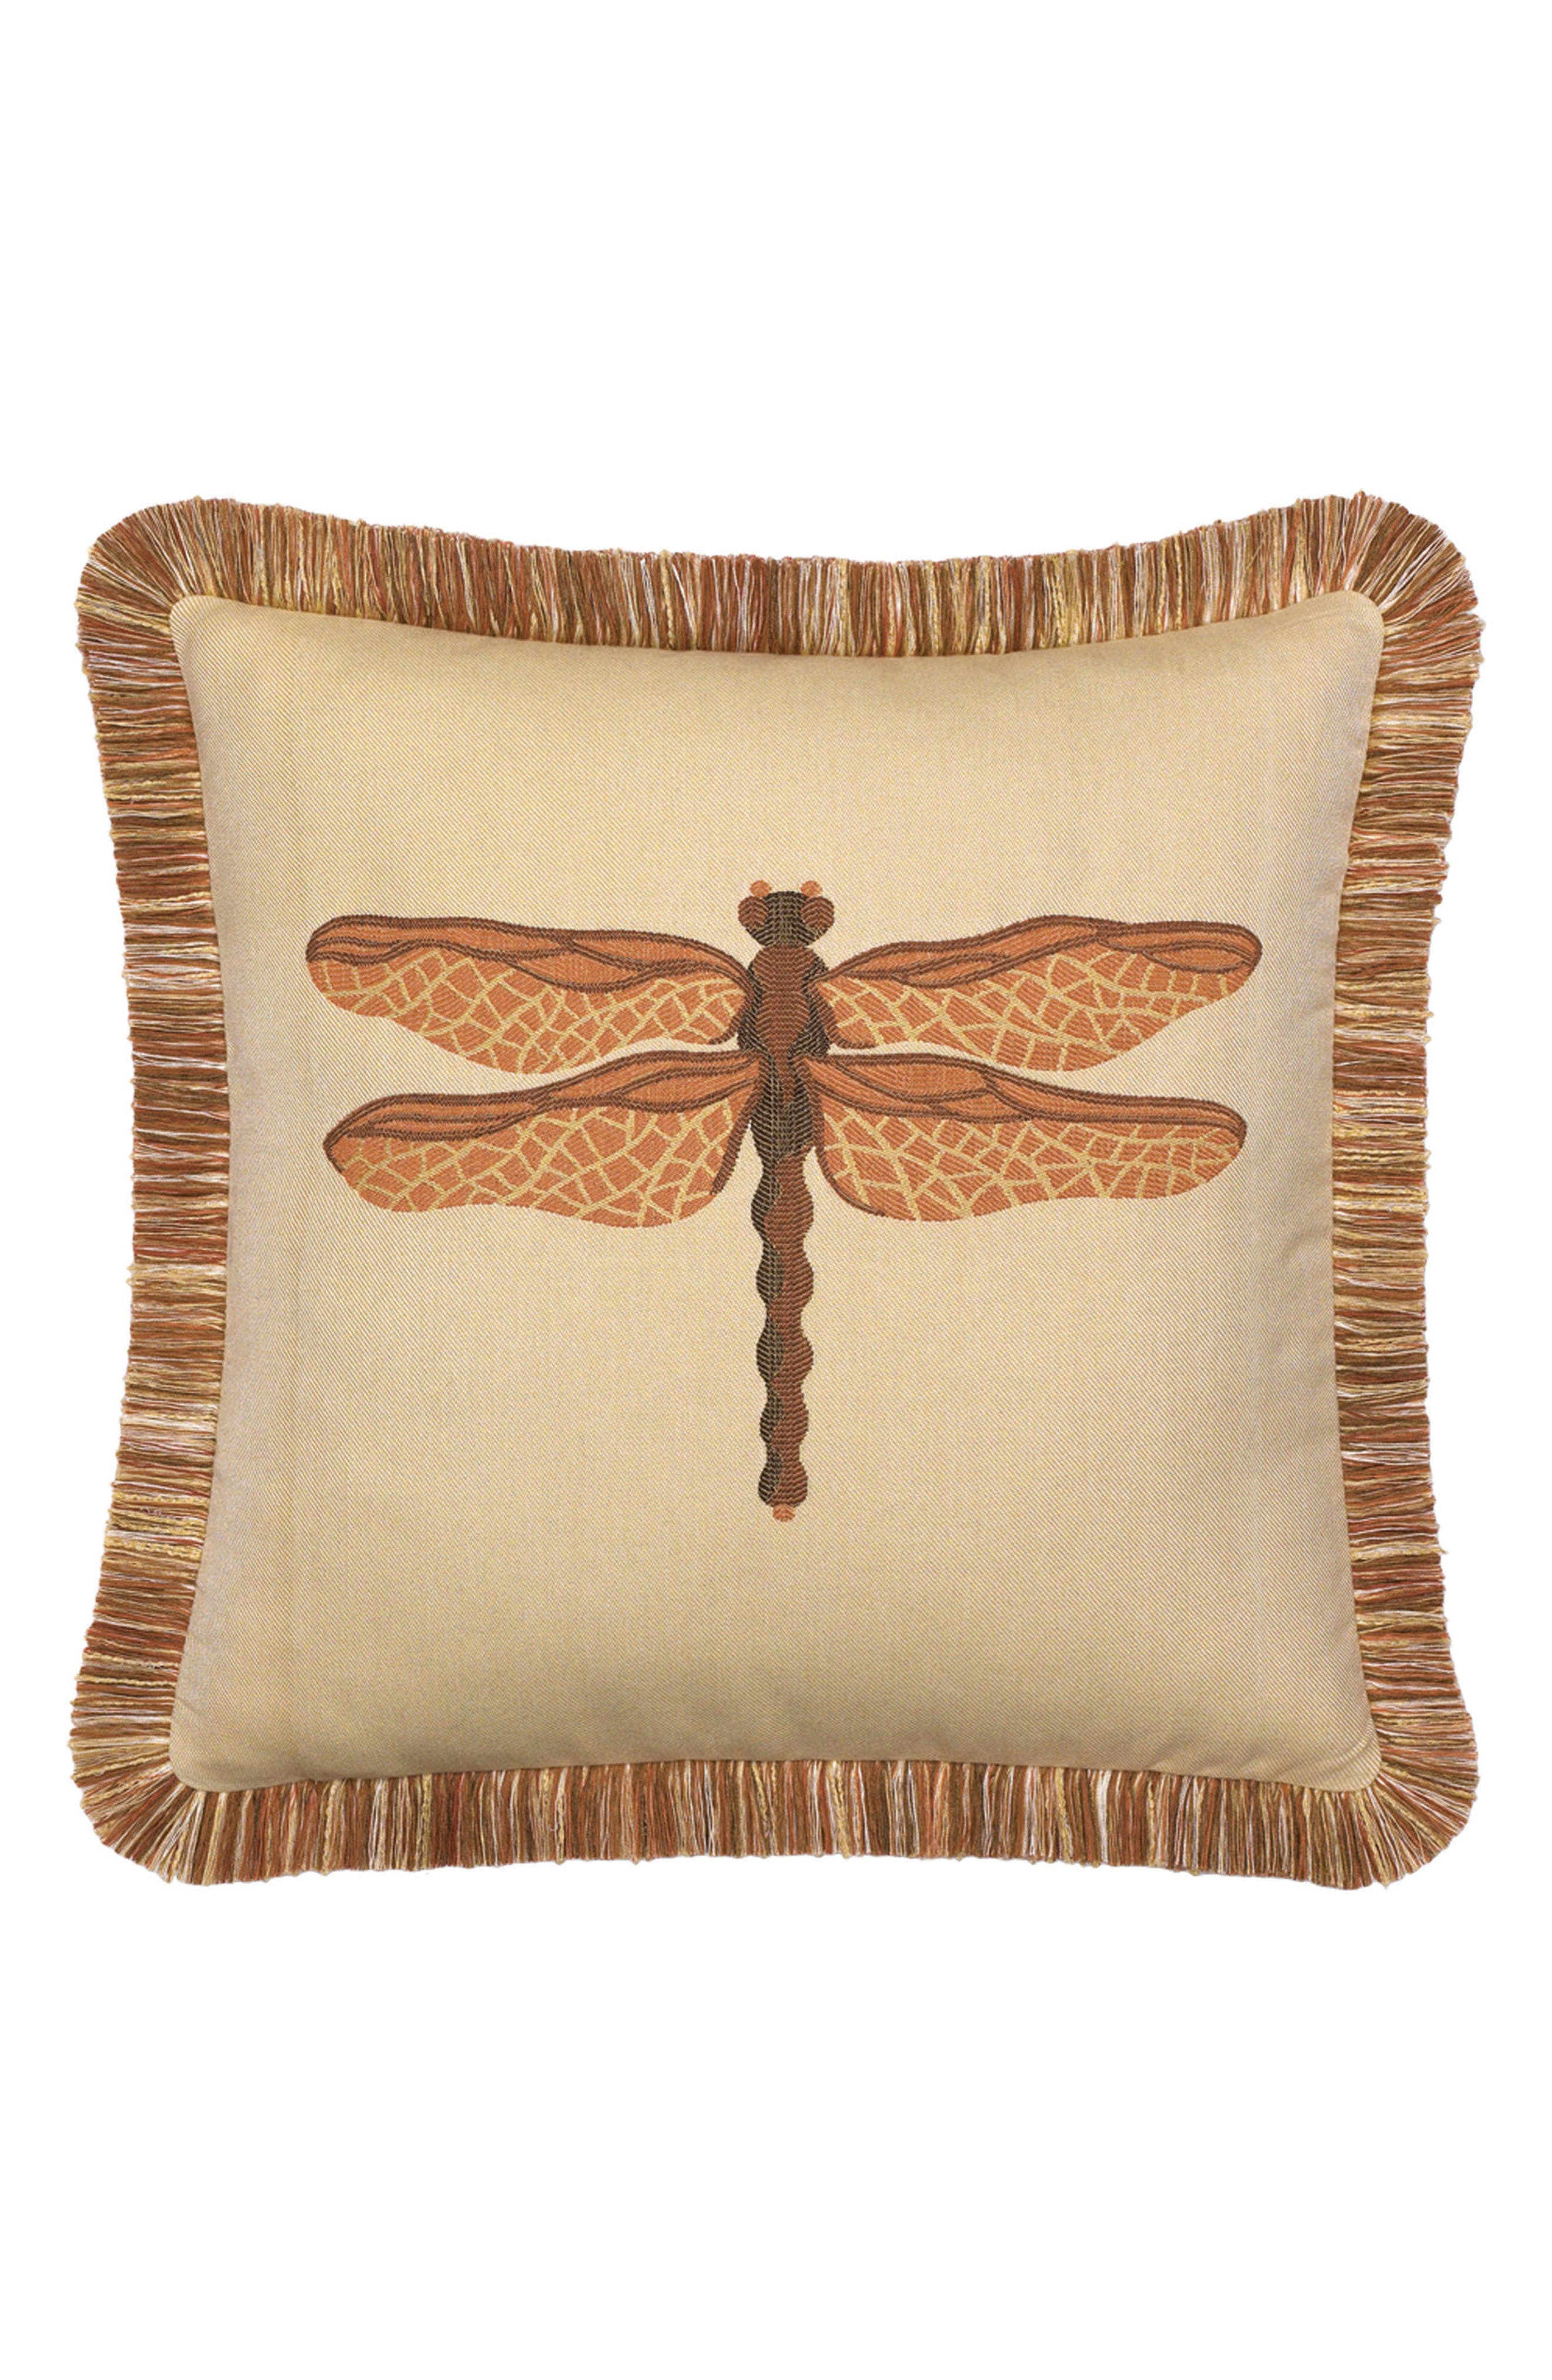 Dragonfly Indoor/Outdoor Accent Pillow,                             Main thumbnail 1, color,                             200